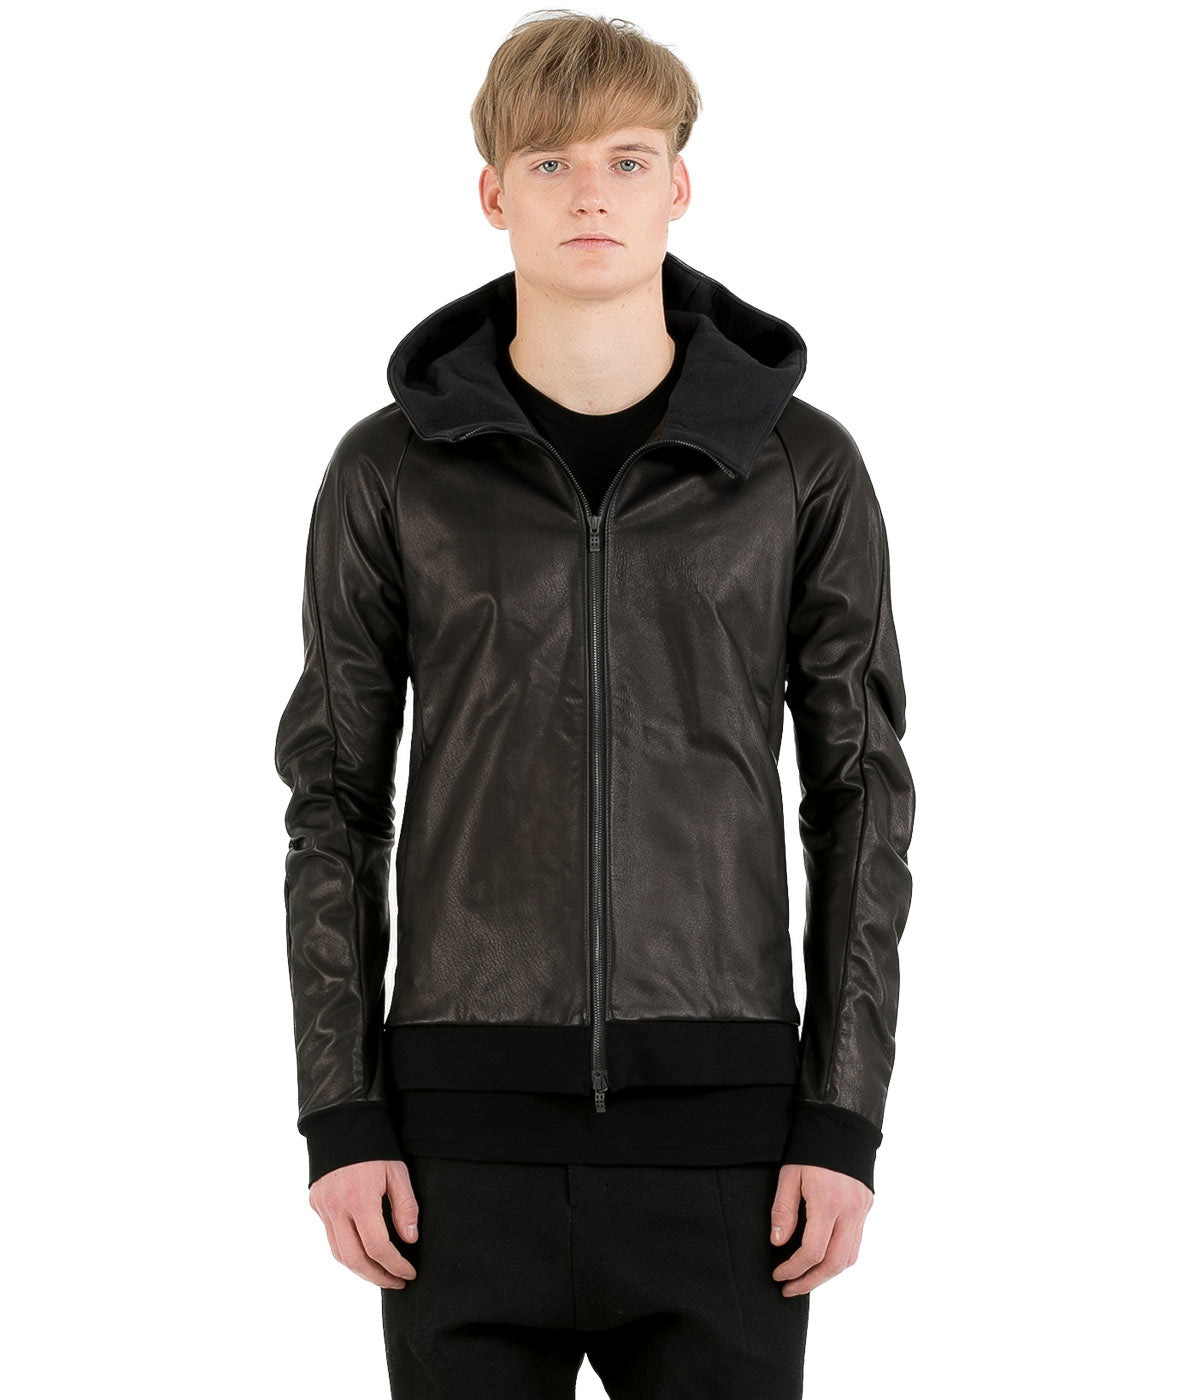 Black Deer Leather Jacket